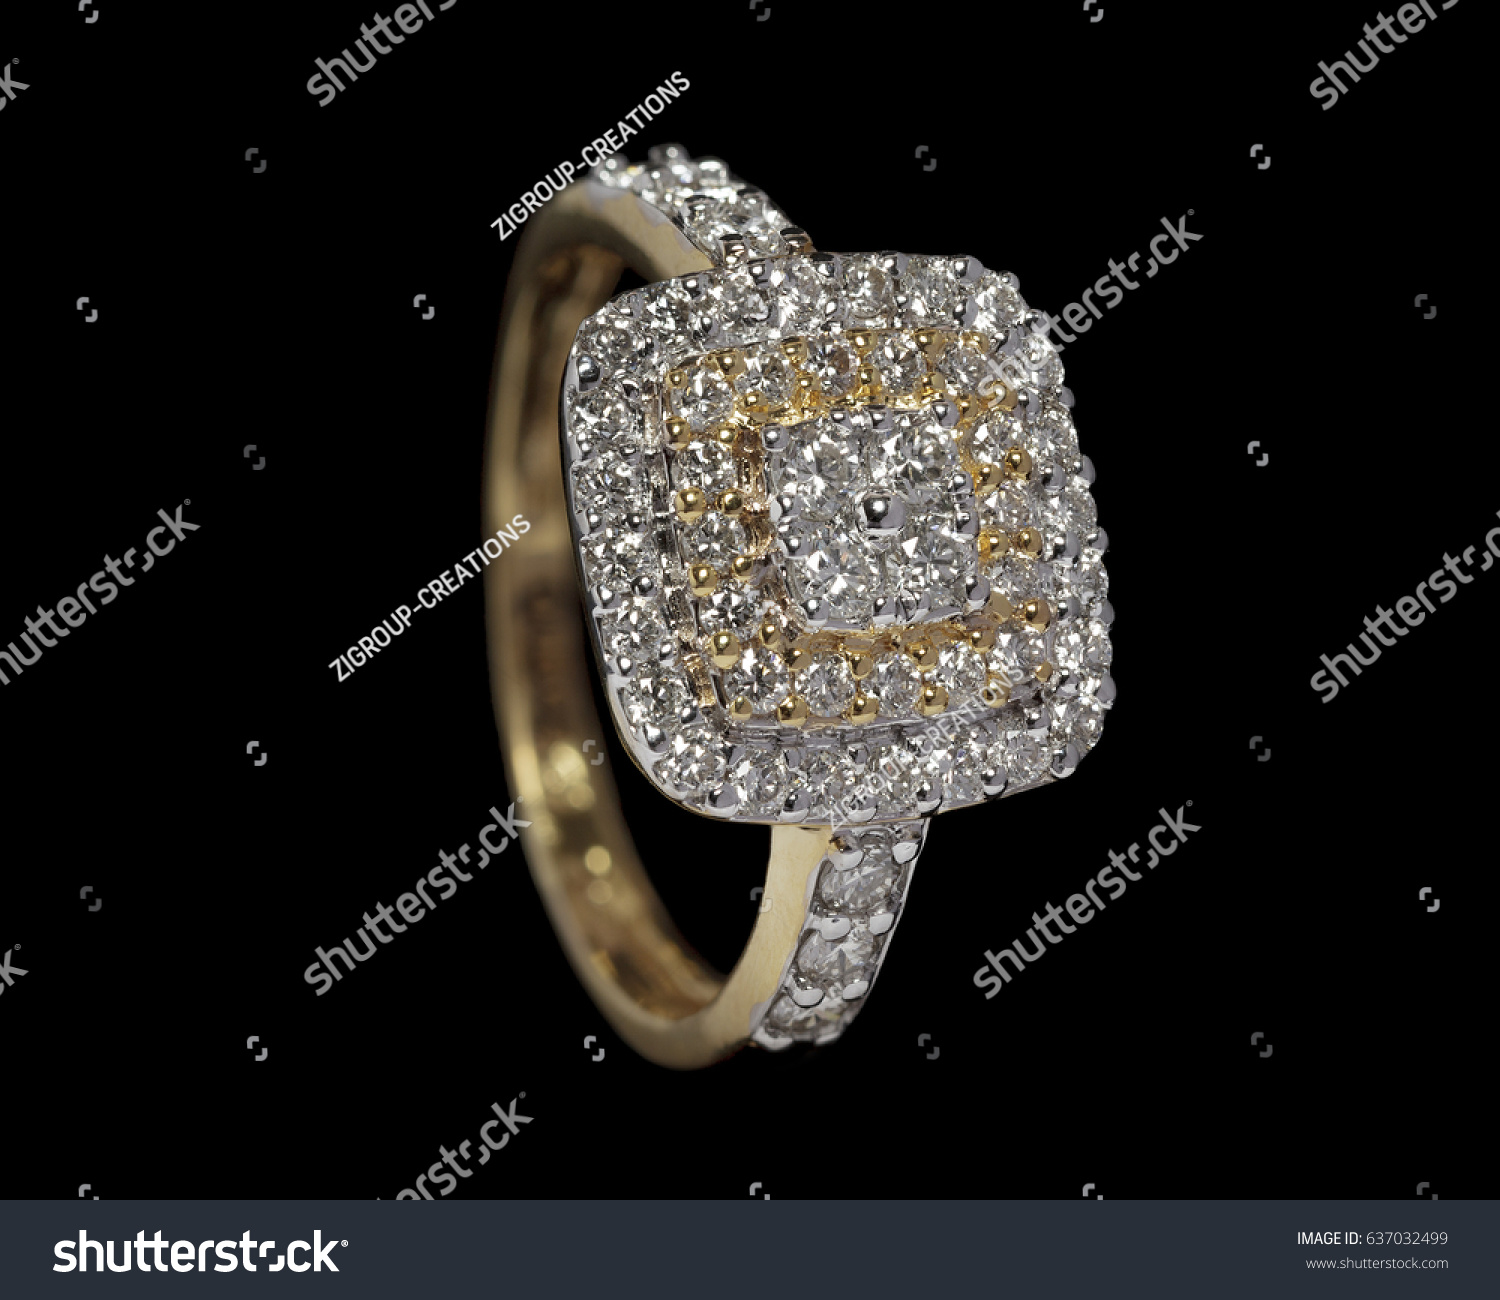 image free royalty stock shiny photo shutterstock diamond